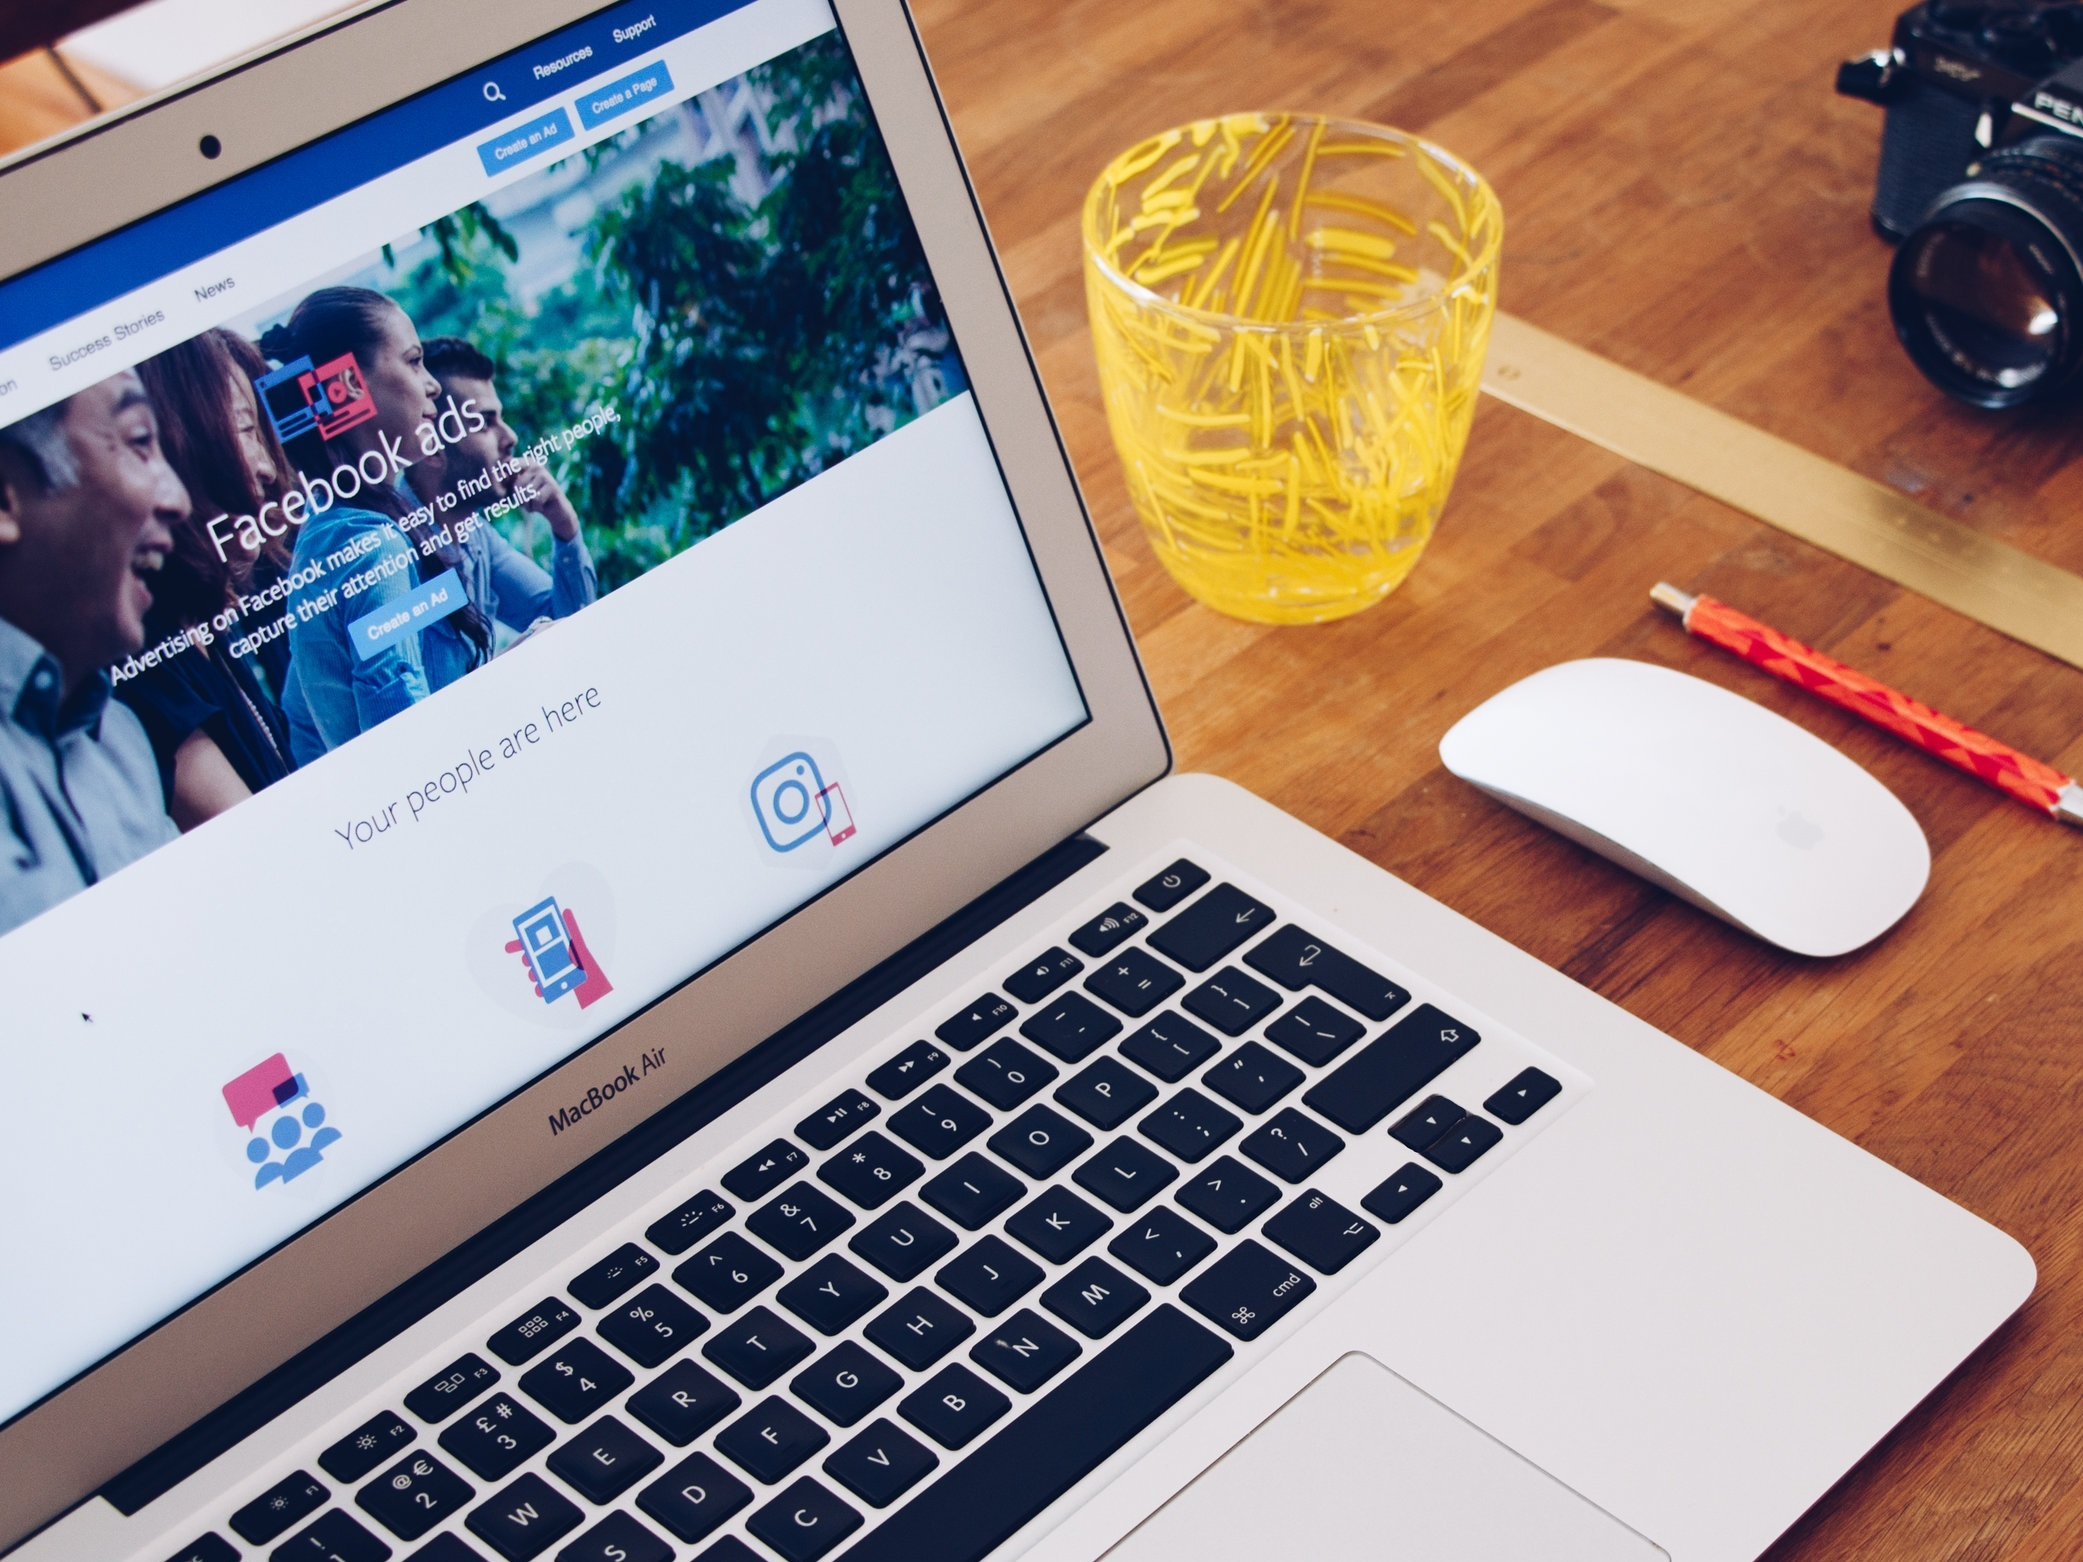 Facebook Ads - Reach new customers and generate leads with one of the most powerful advertising platforms. Learn more about how we partner with clients and execute Facebook ad campaigns with the highest returns on investment.